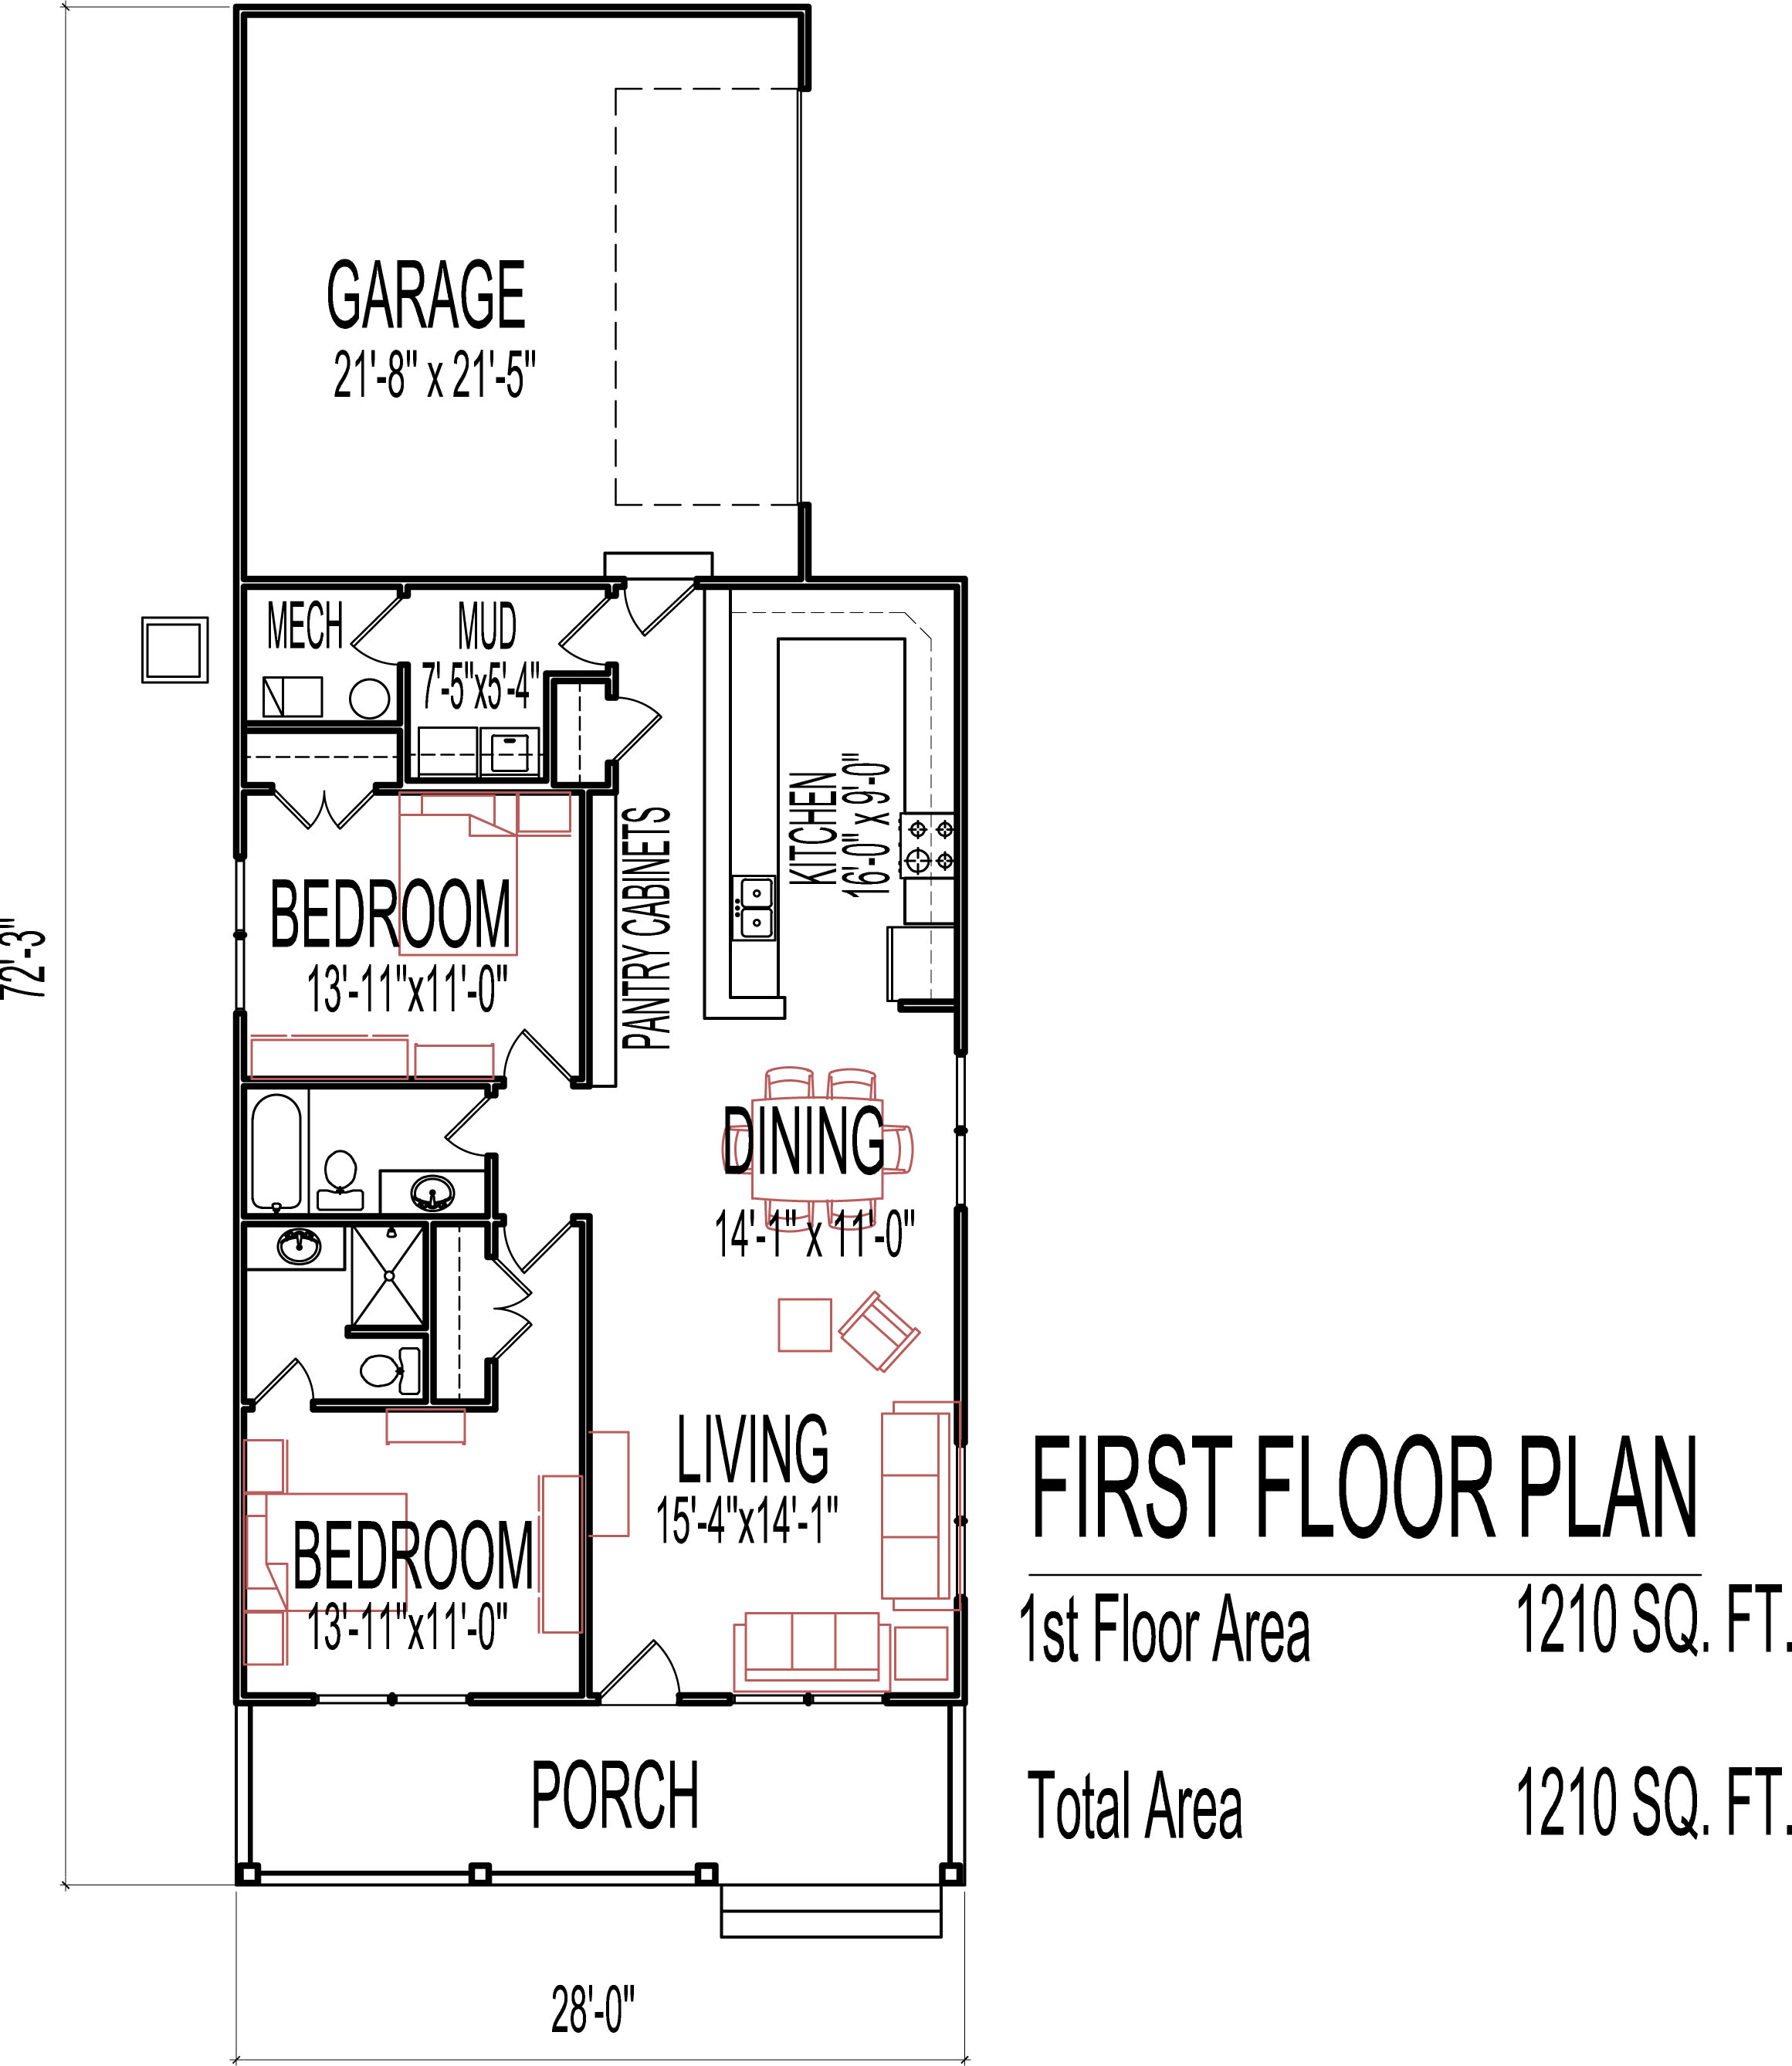 Small Two Bedroom House Plans Low Cost 1200 Sq Ft one Story – Floor Plans For 2 Bedroom 2 Bath Homes